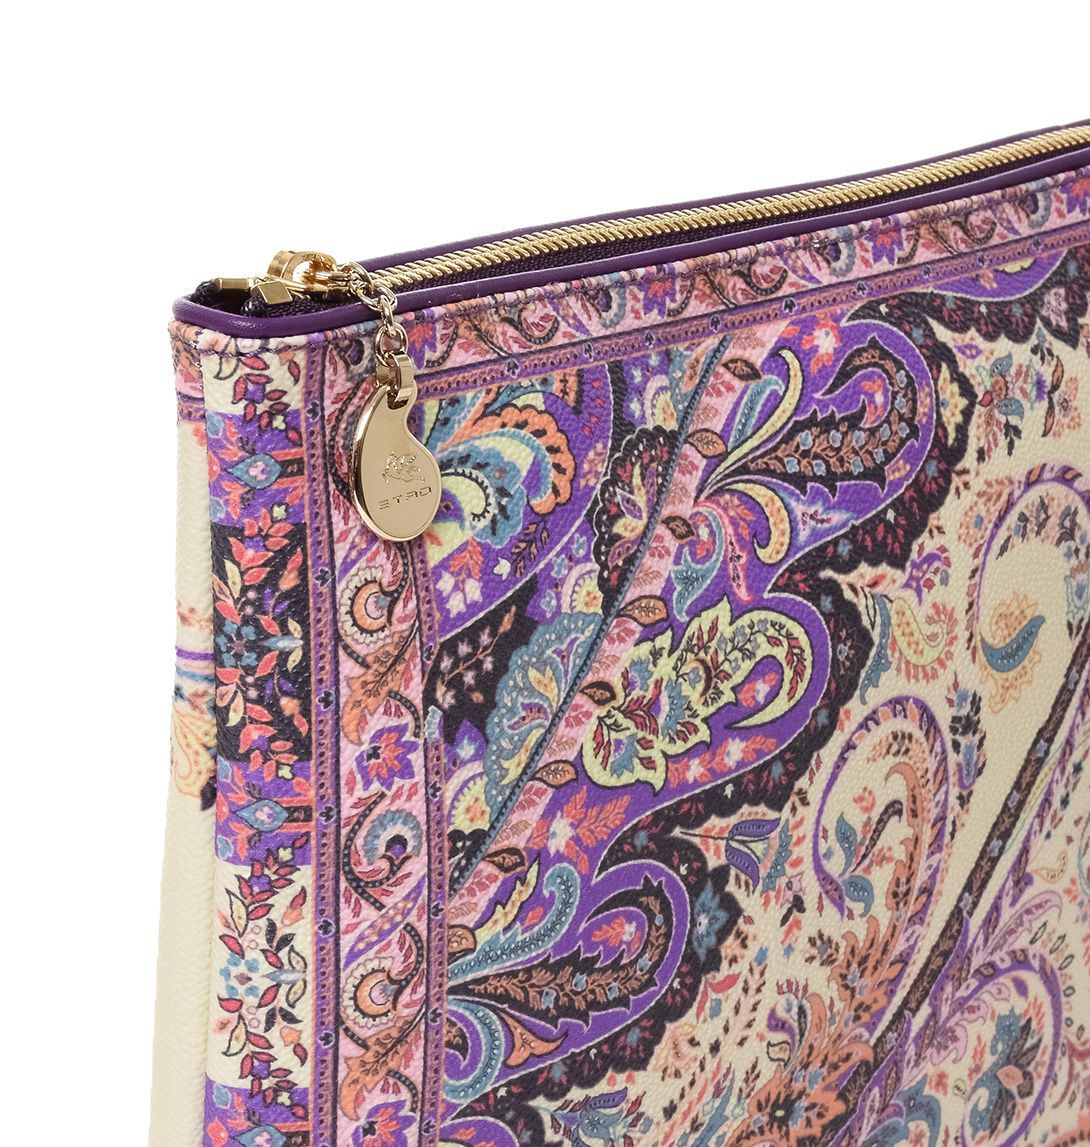 ETRO WOMEN'S 1E3802790400 MULTICOLOR PVC COVER